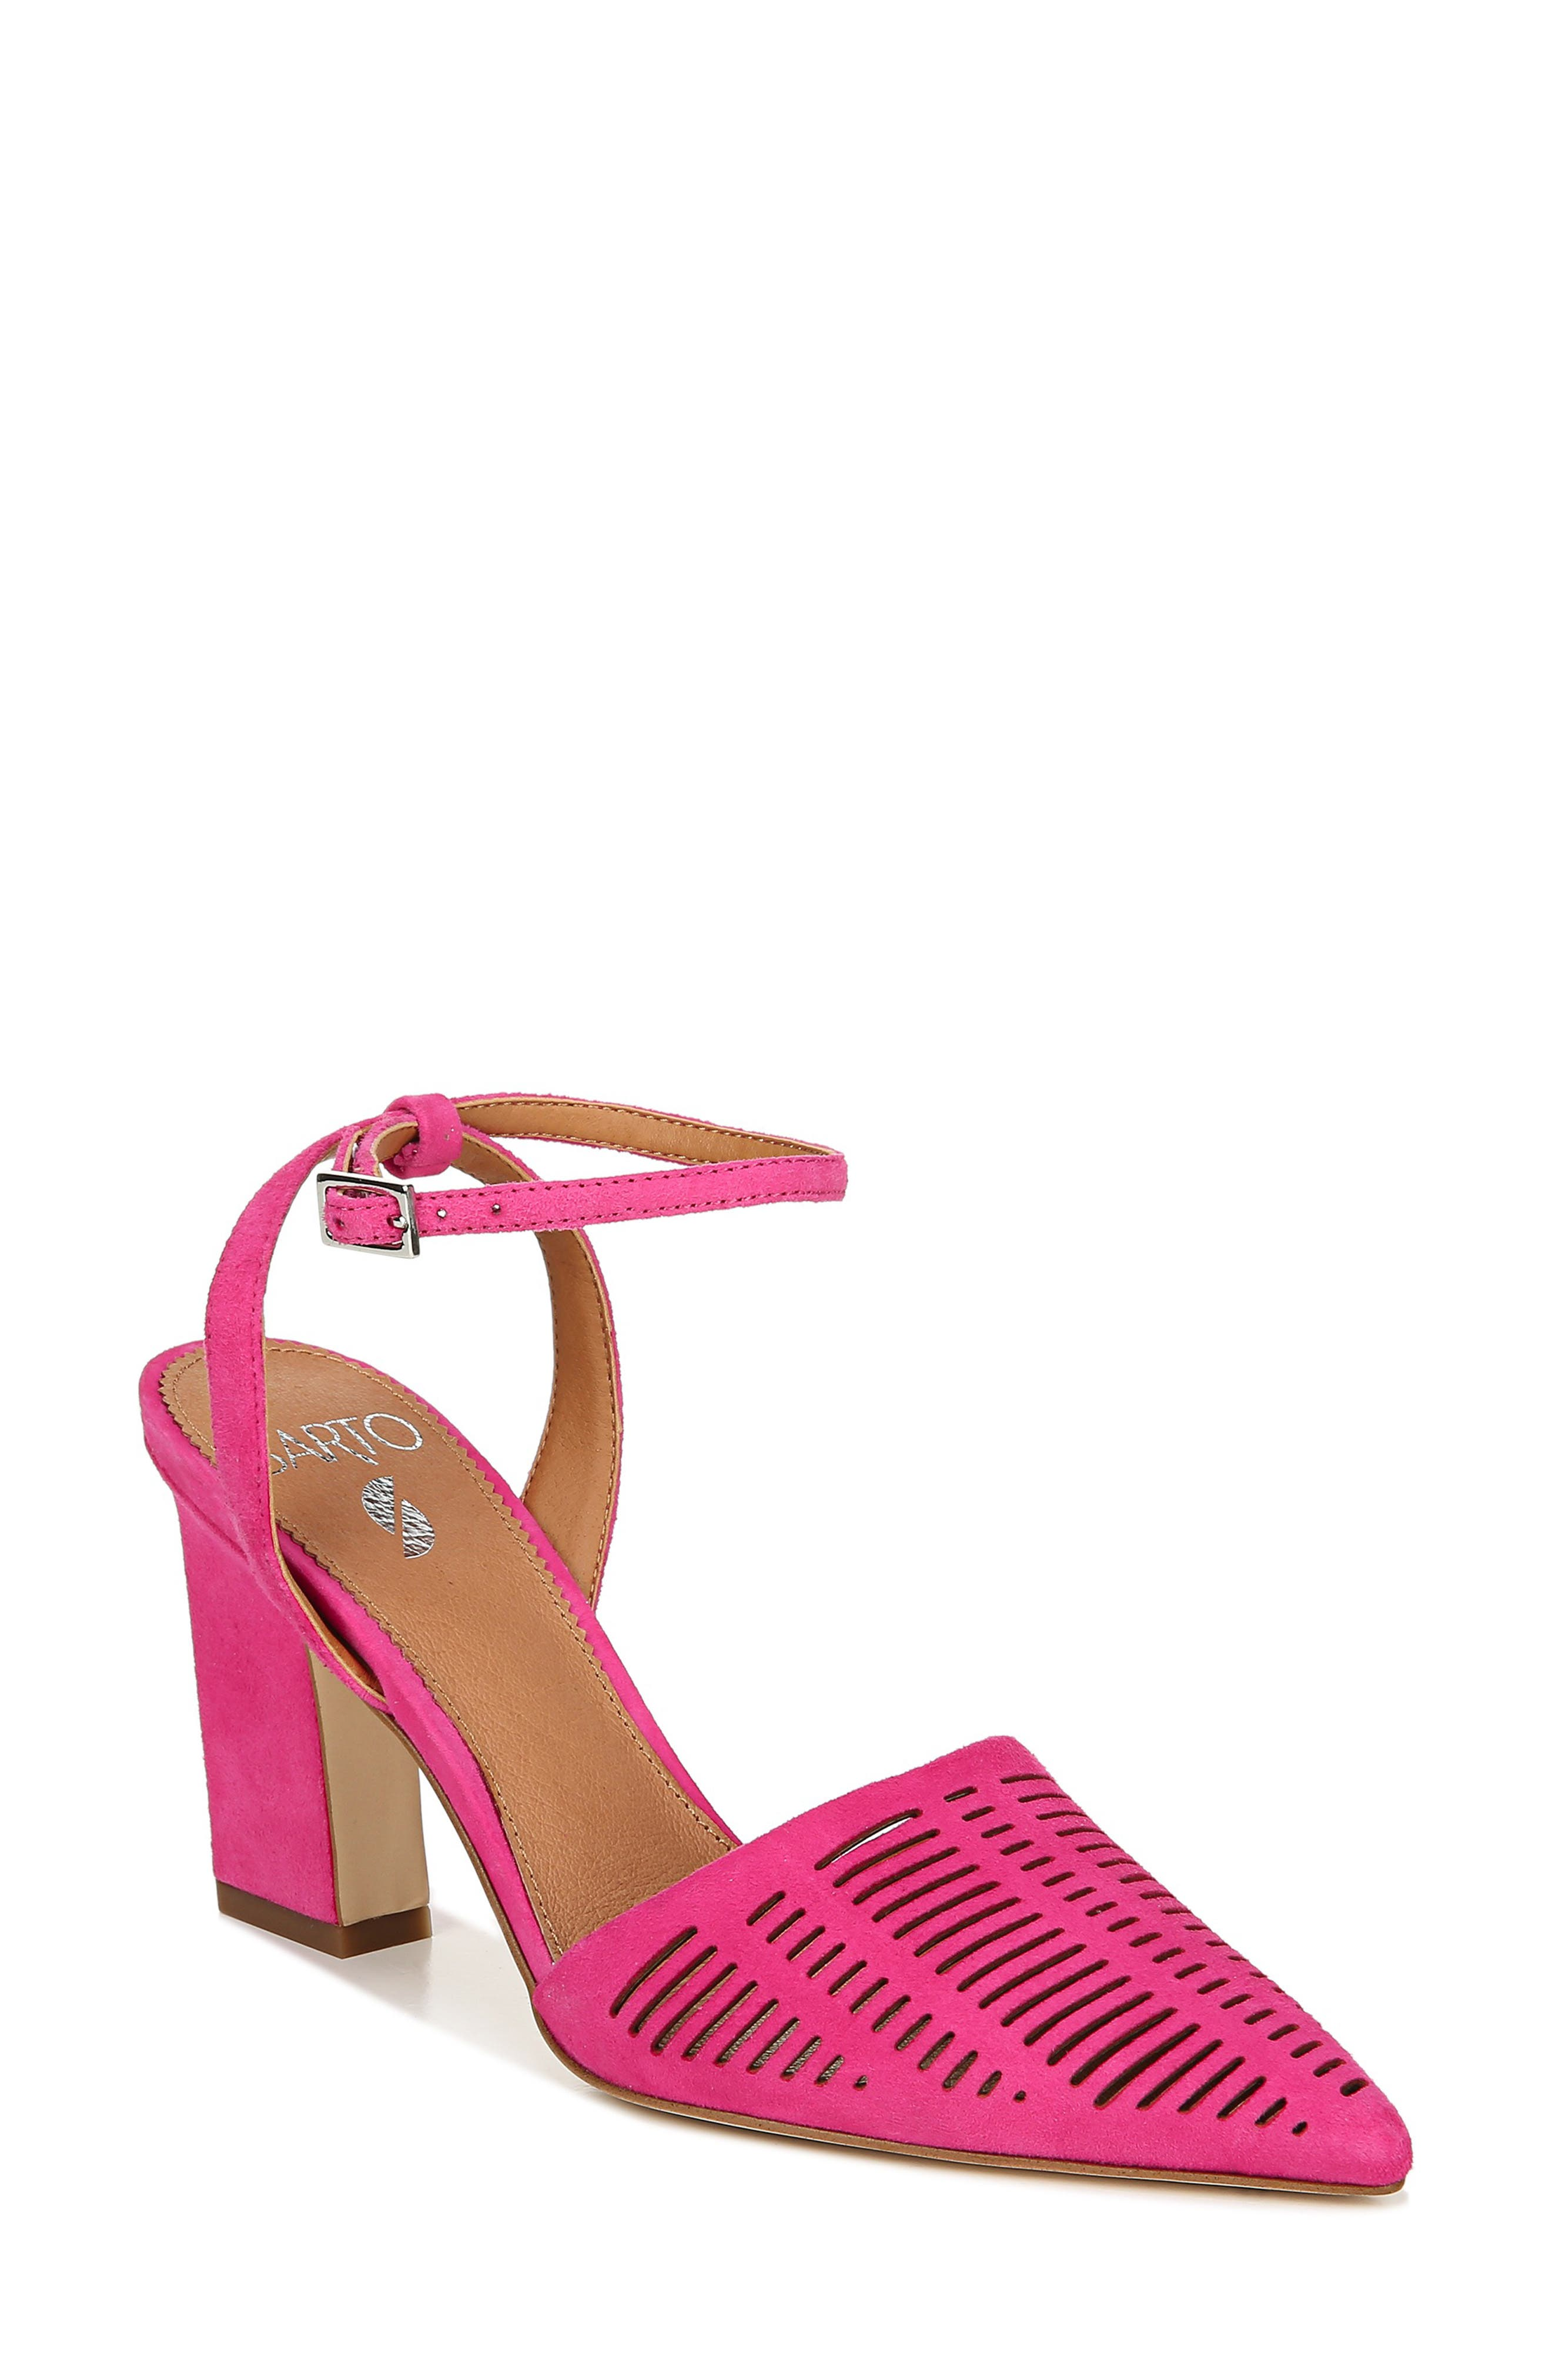 Image of SARTO BY FRANCO SARTO Starla Leather Perforated Ankle Strap Pump